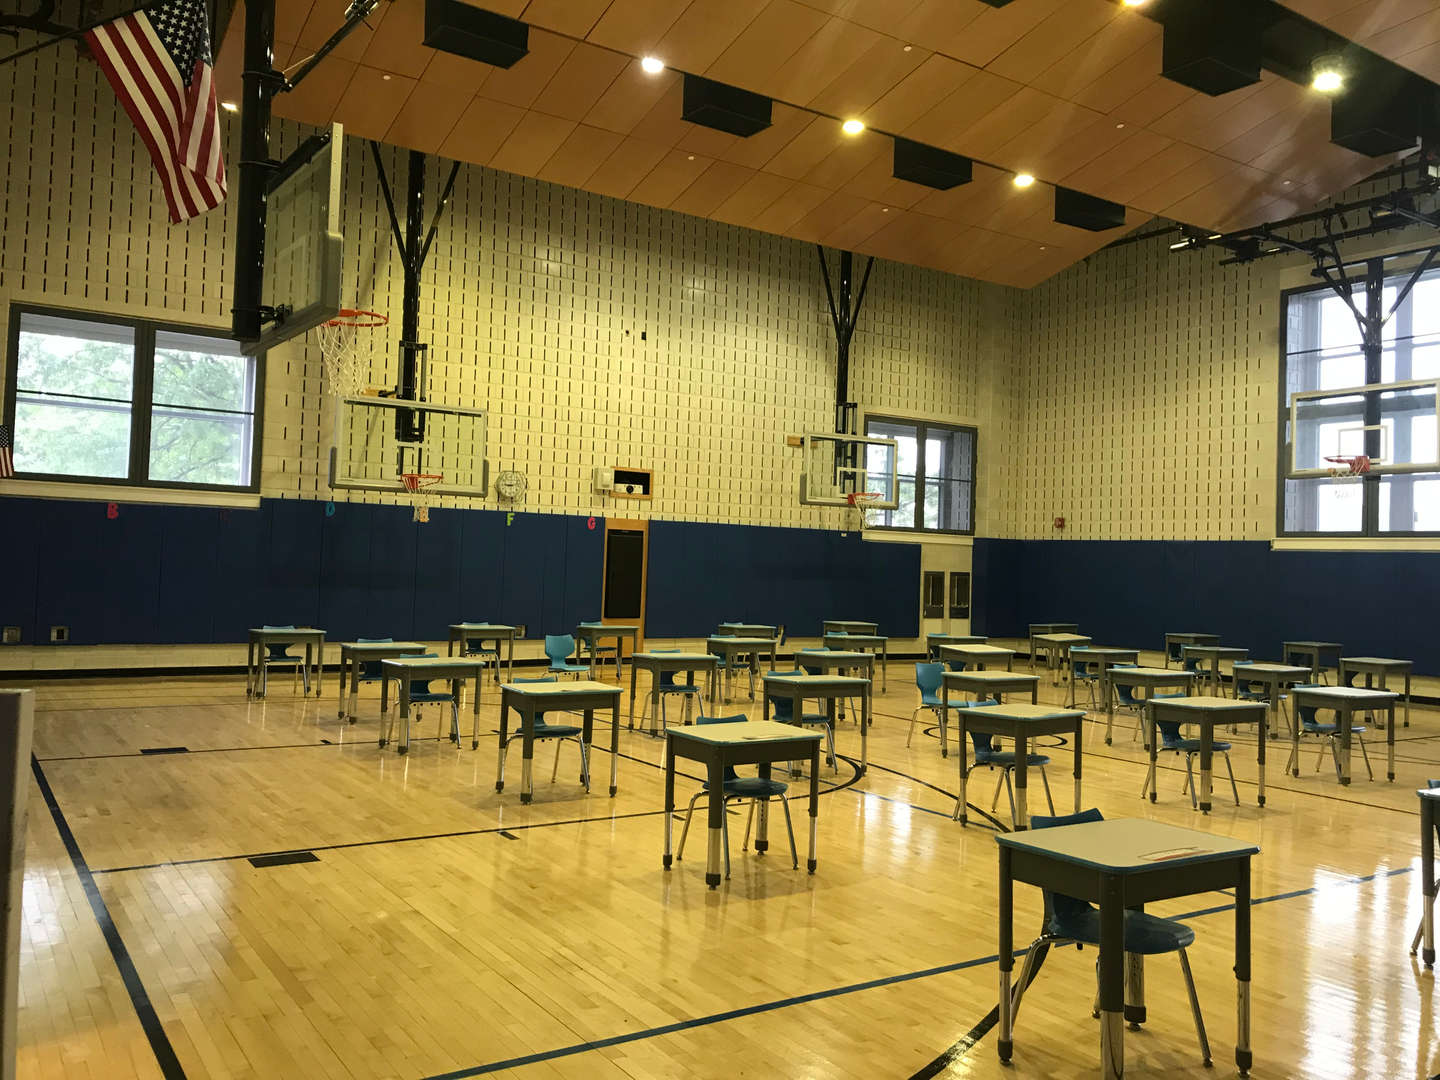 Inside gym looking away from stage view.